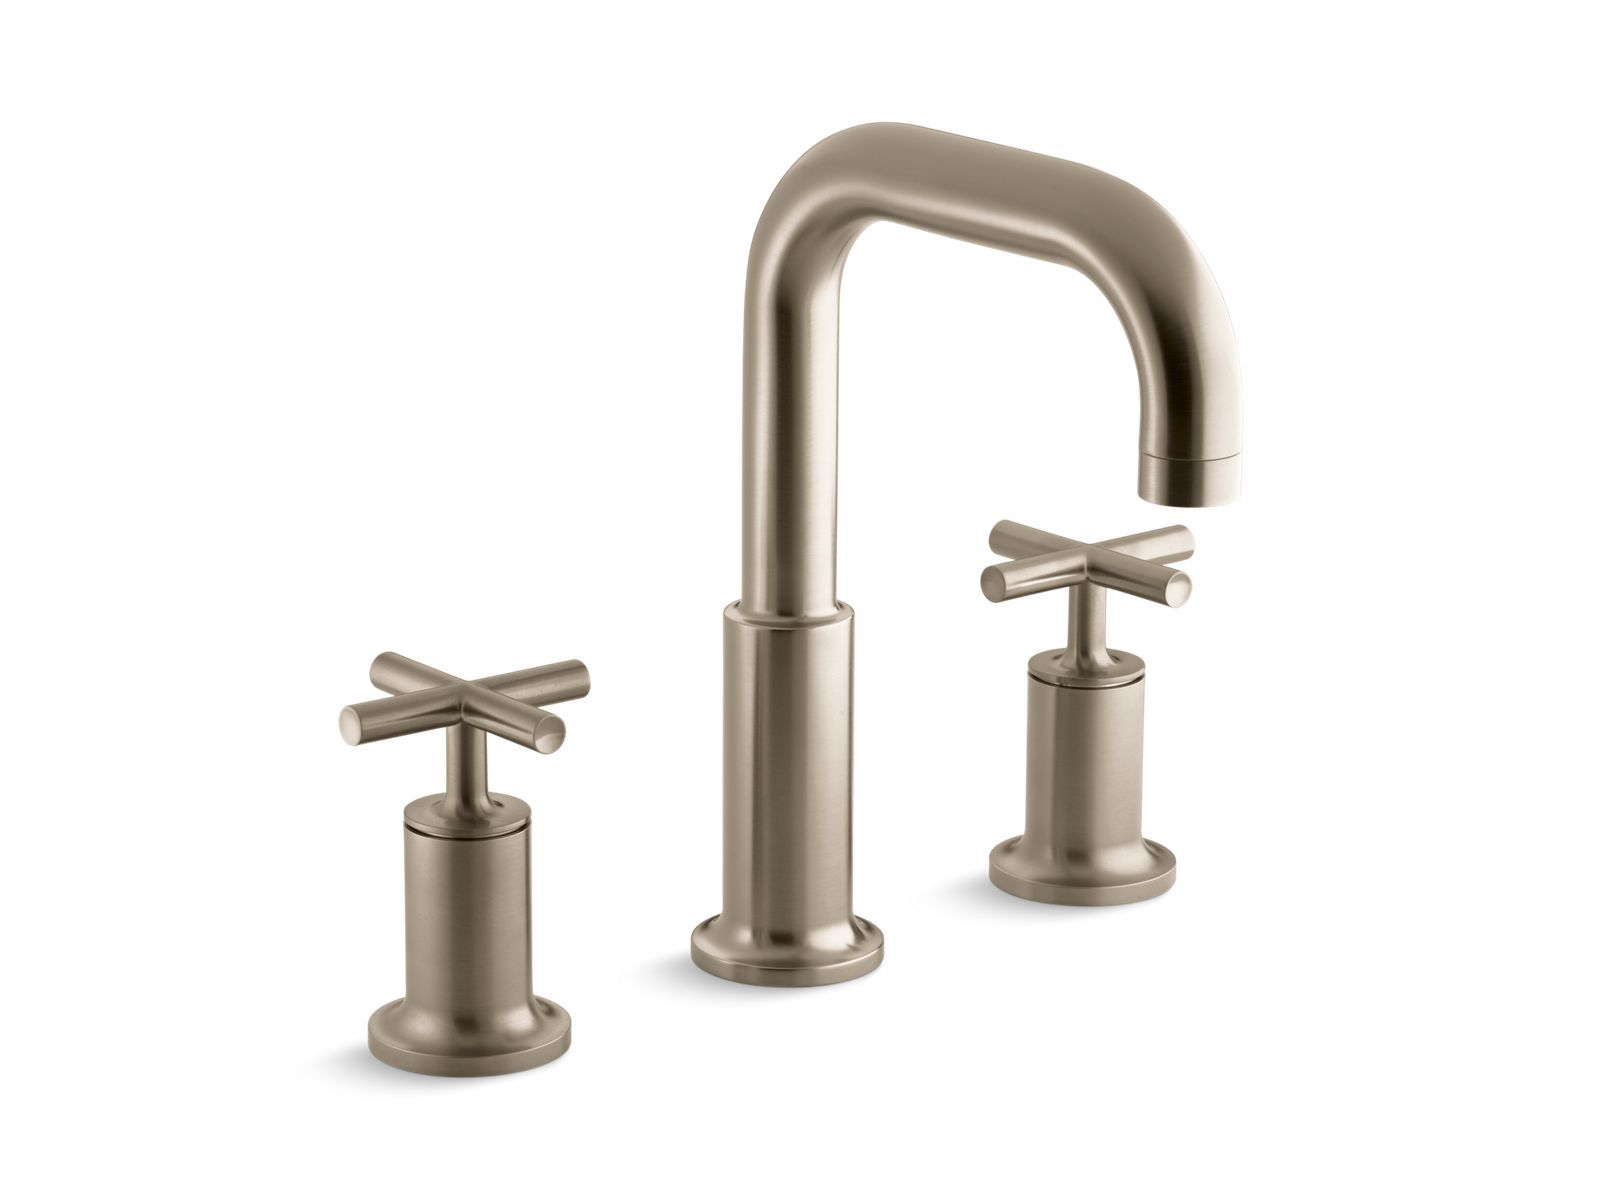 high mount faucet kohler flow gold bathroom trim k faucets bath pin purist deck